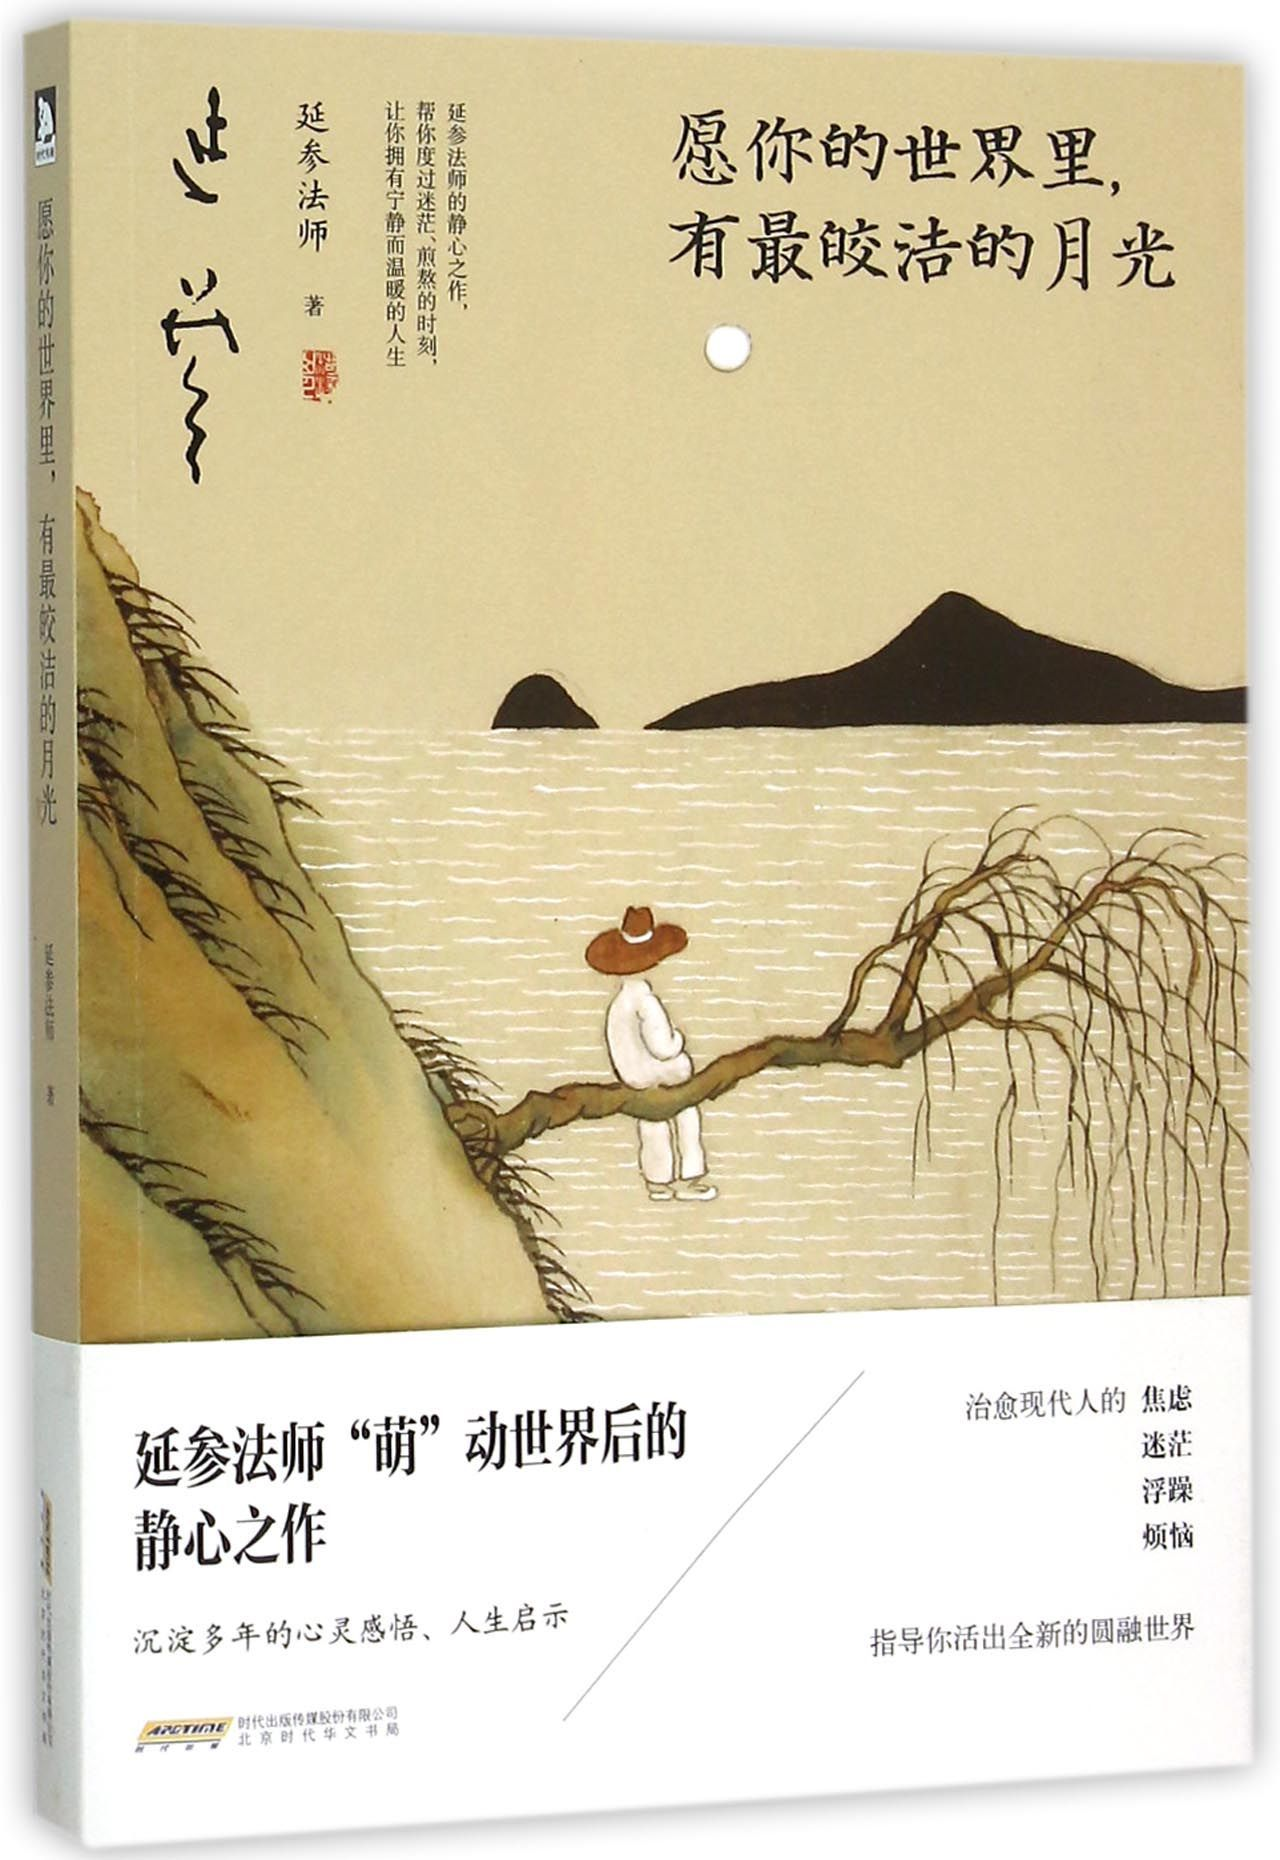 May There Be Bright Moonlight in Your World 愿你的世界里,有最皎洁的月光 Master Yancan 延参法师